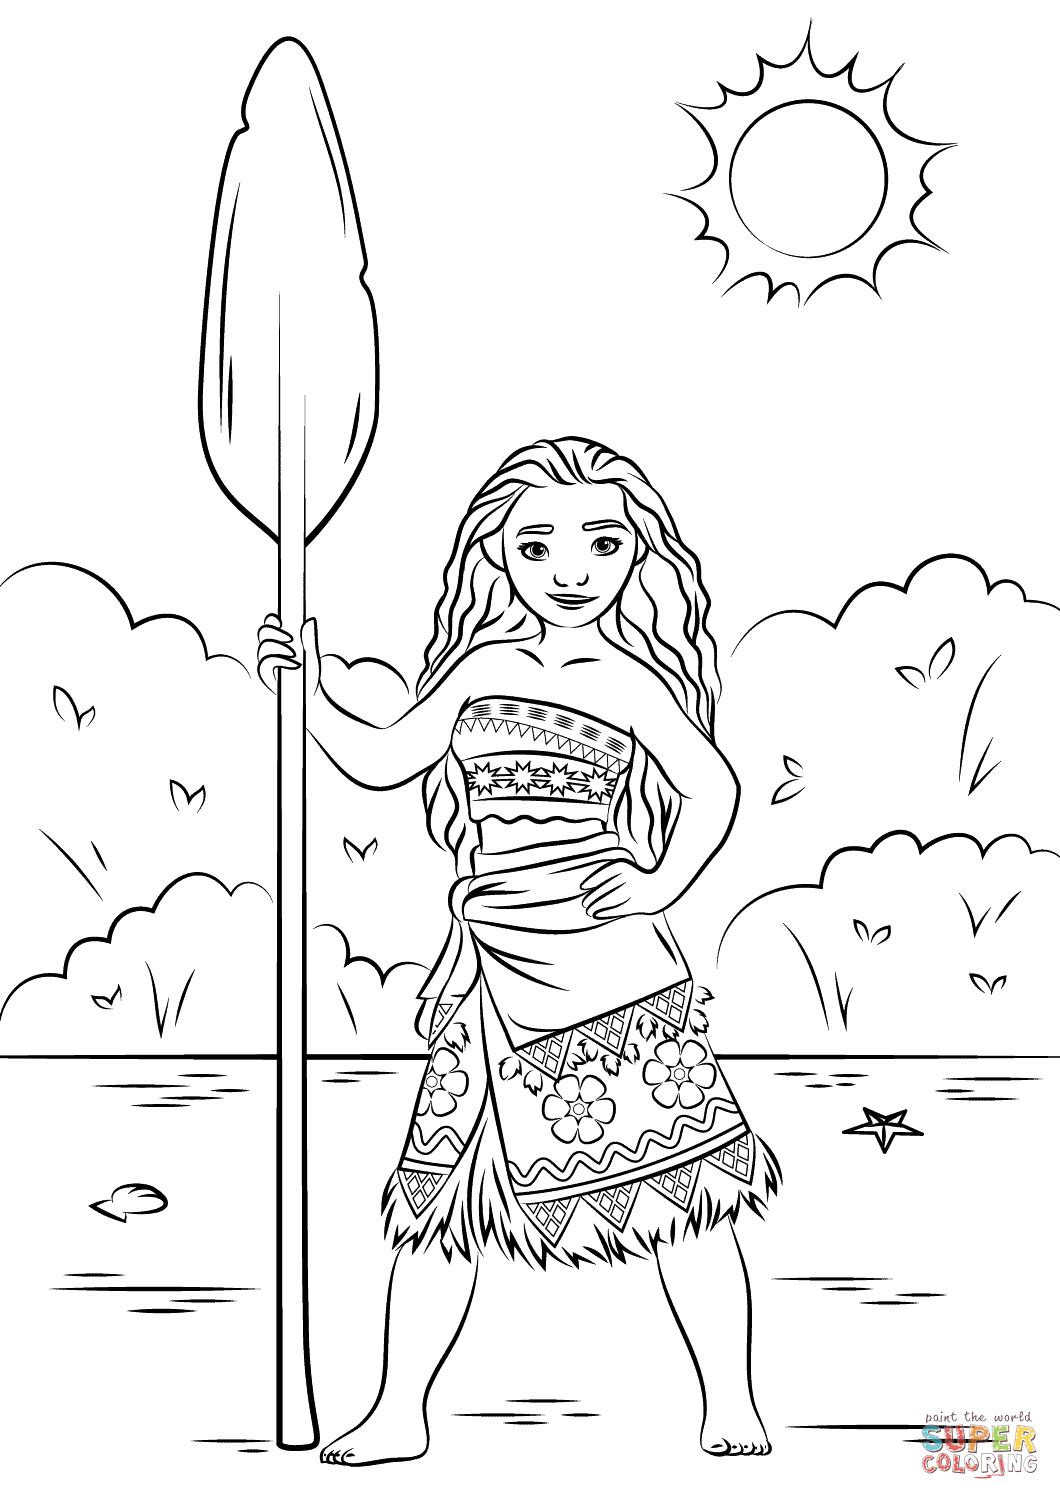 simple moana coloring page for children - Coloring Page Moana